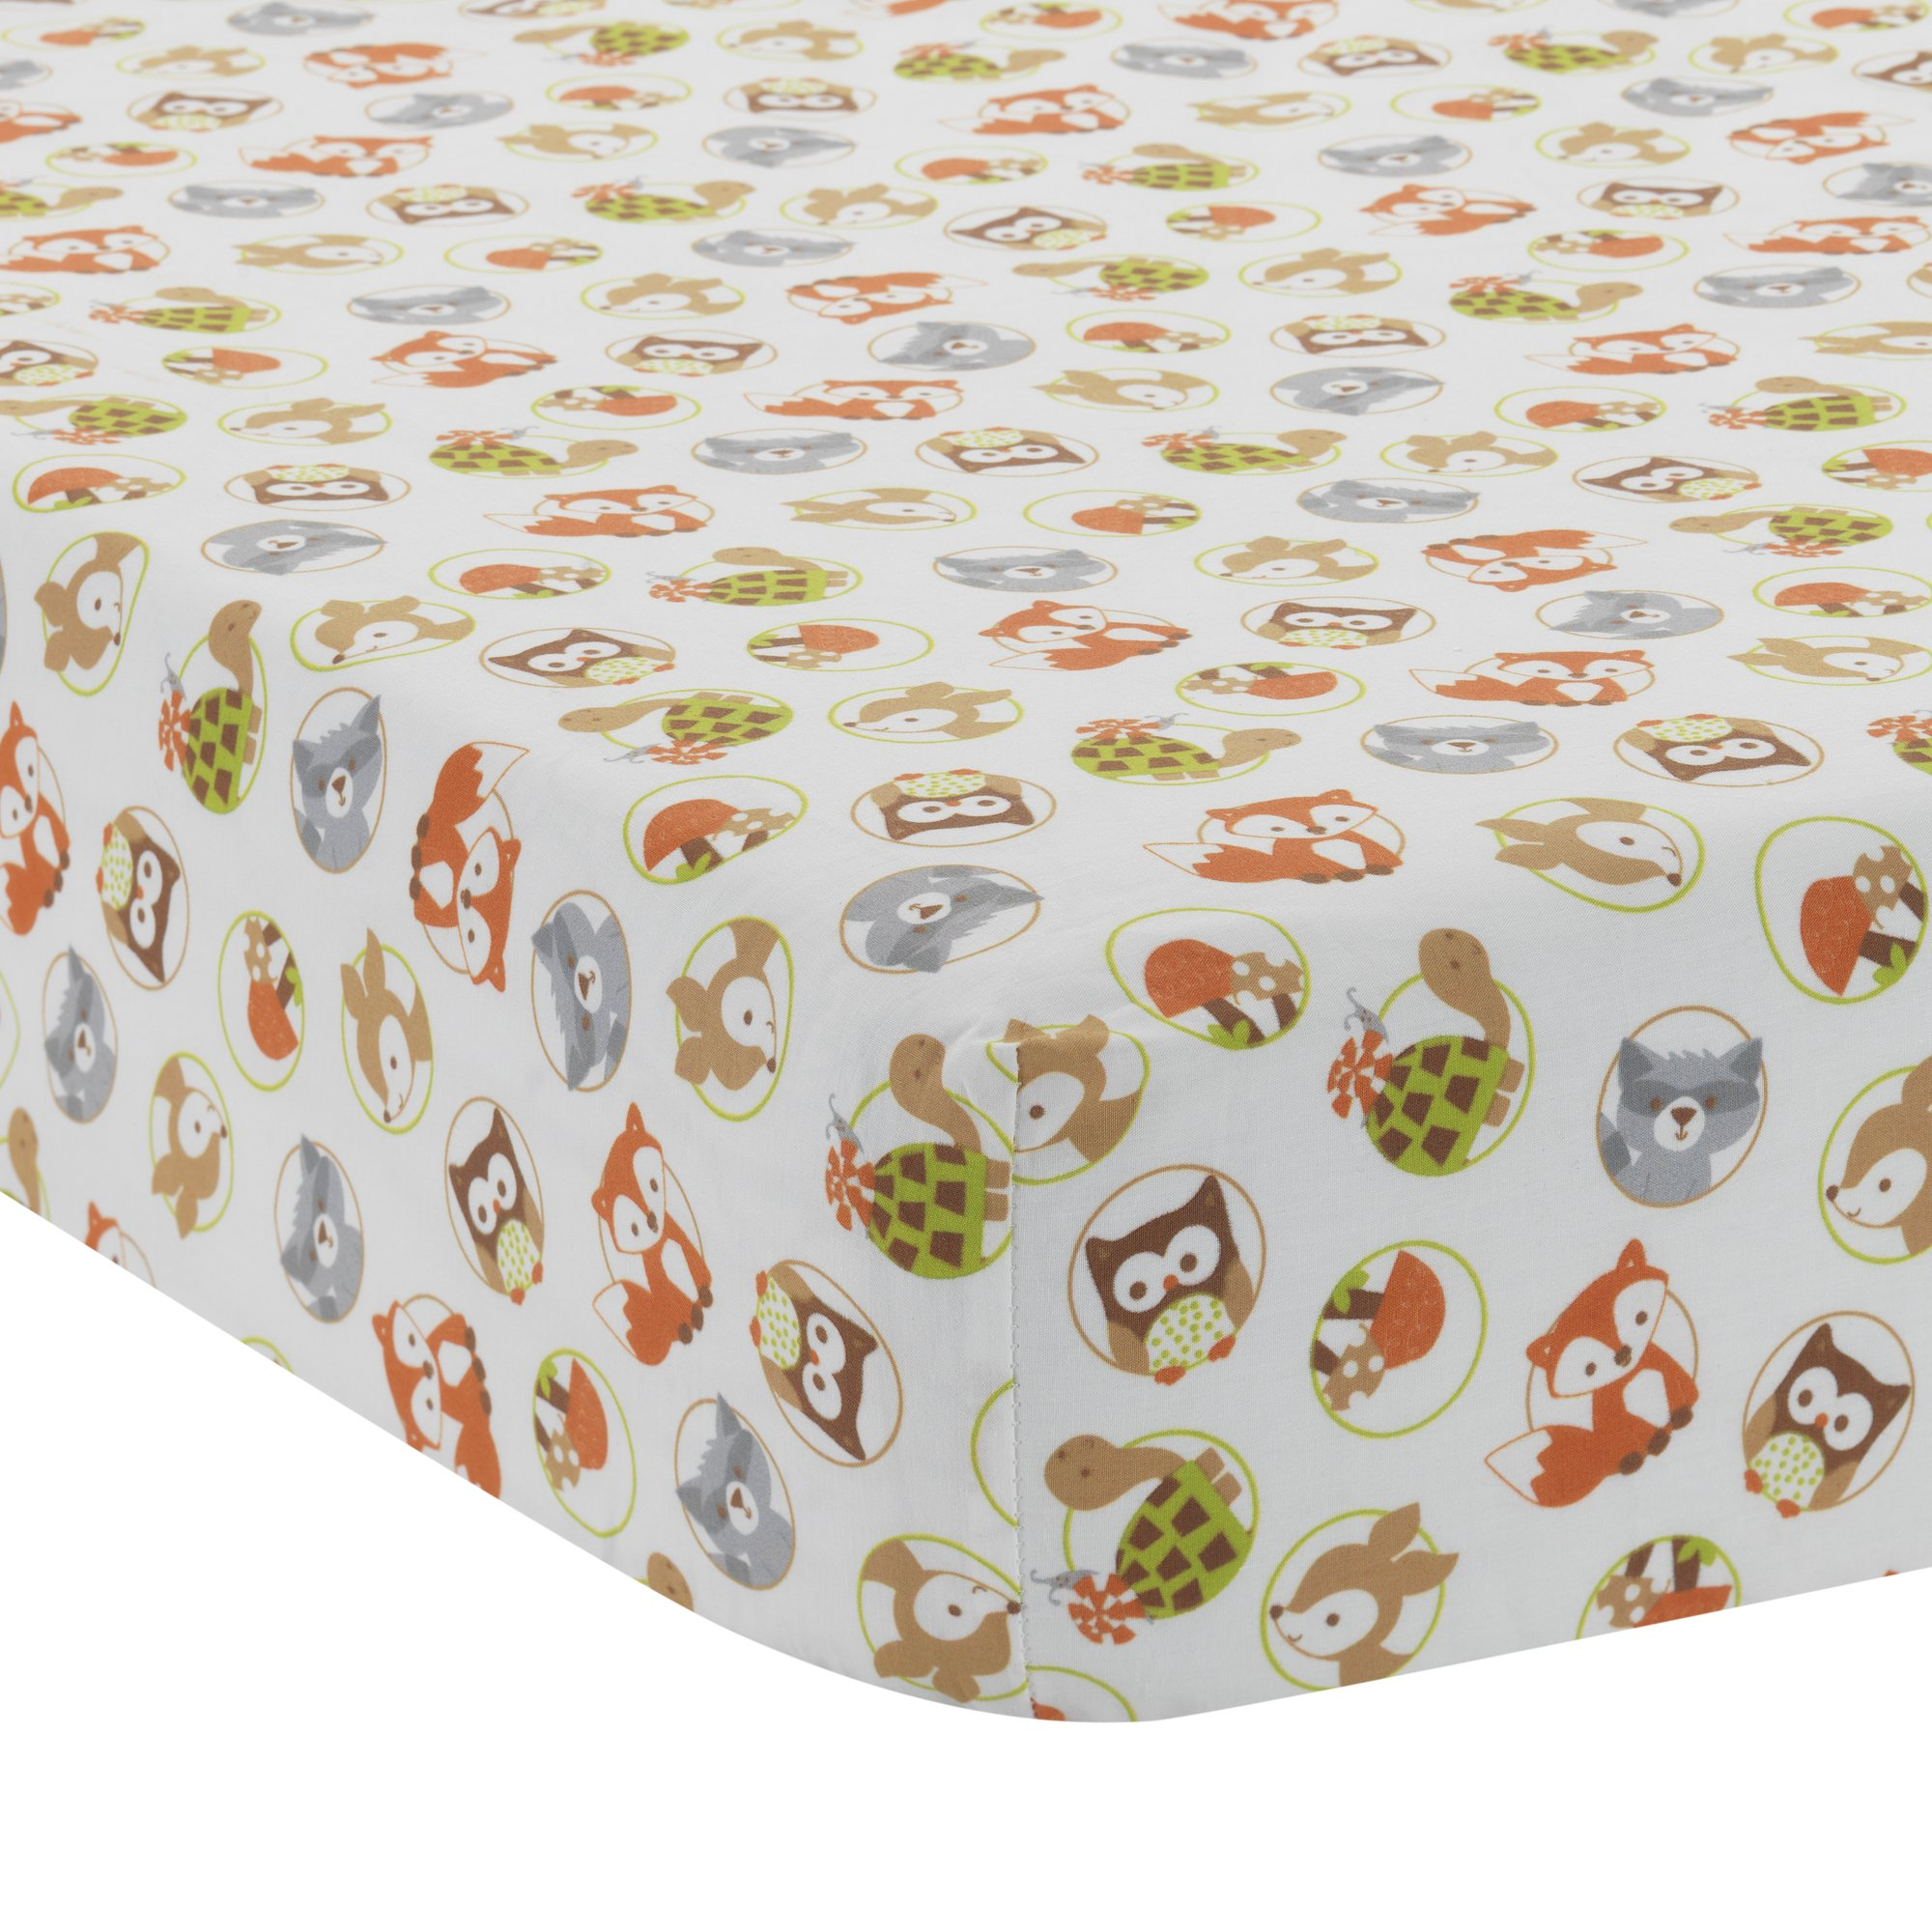 Bedtime Originals Friendly Forest Woodland Fitted Crib Sheet, Green/Brown/White